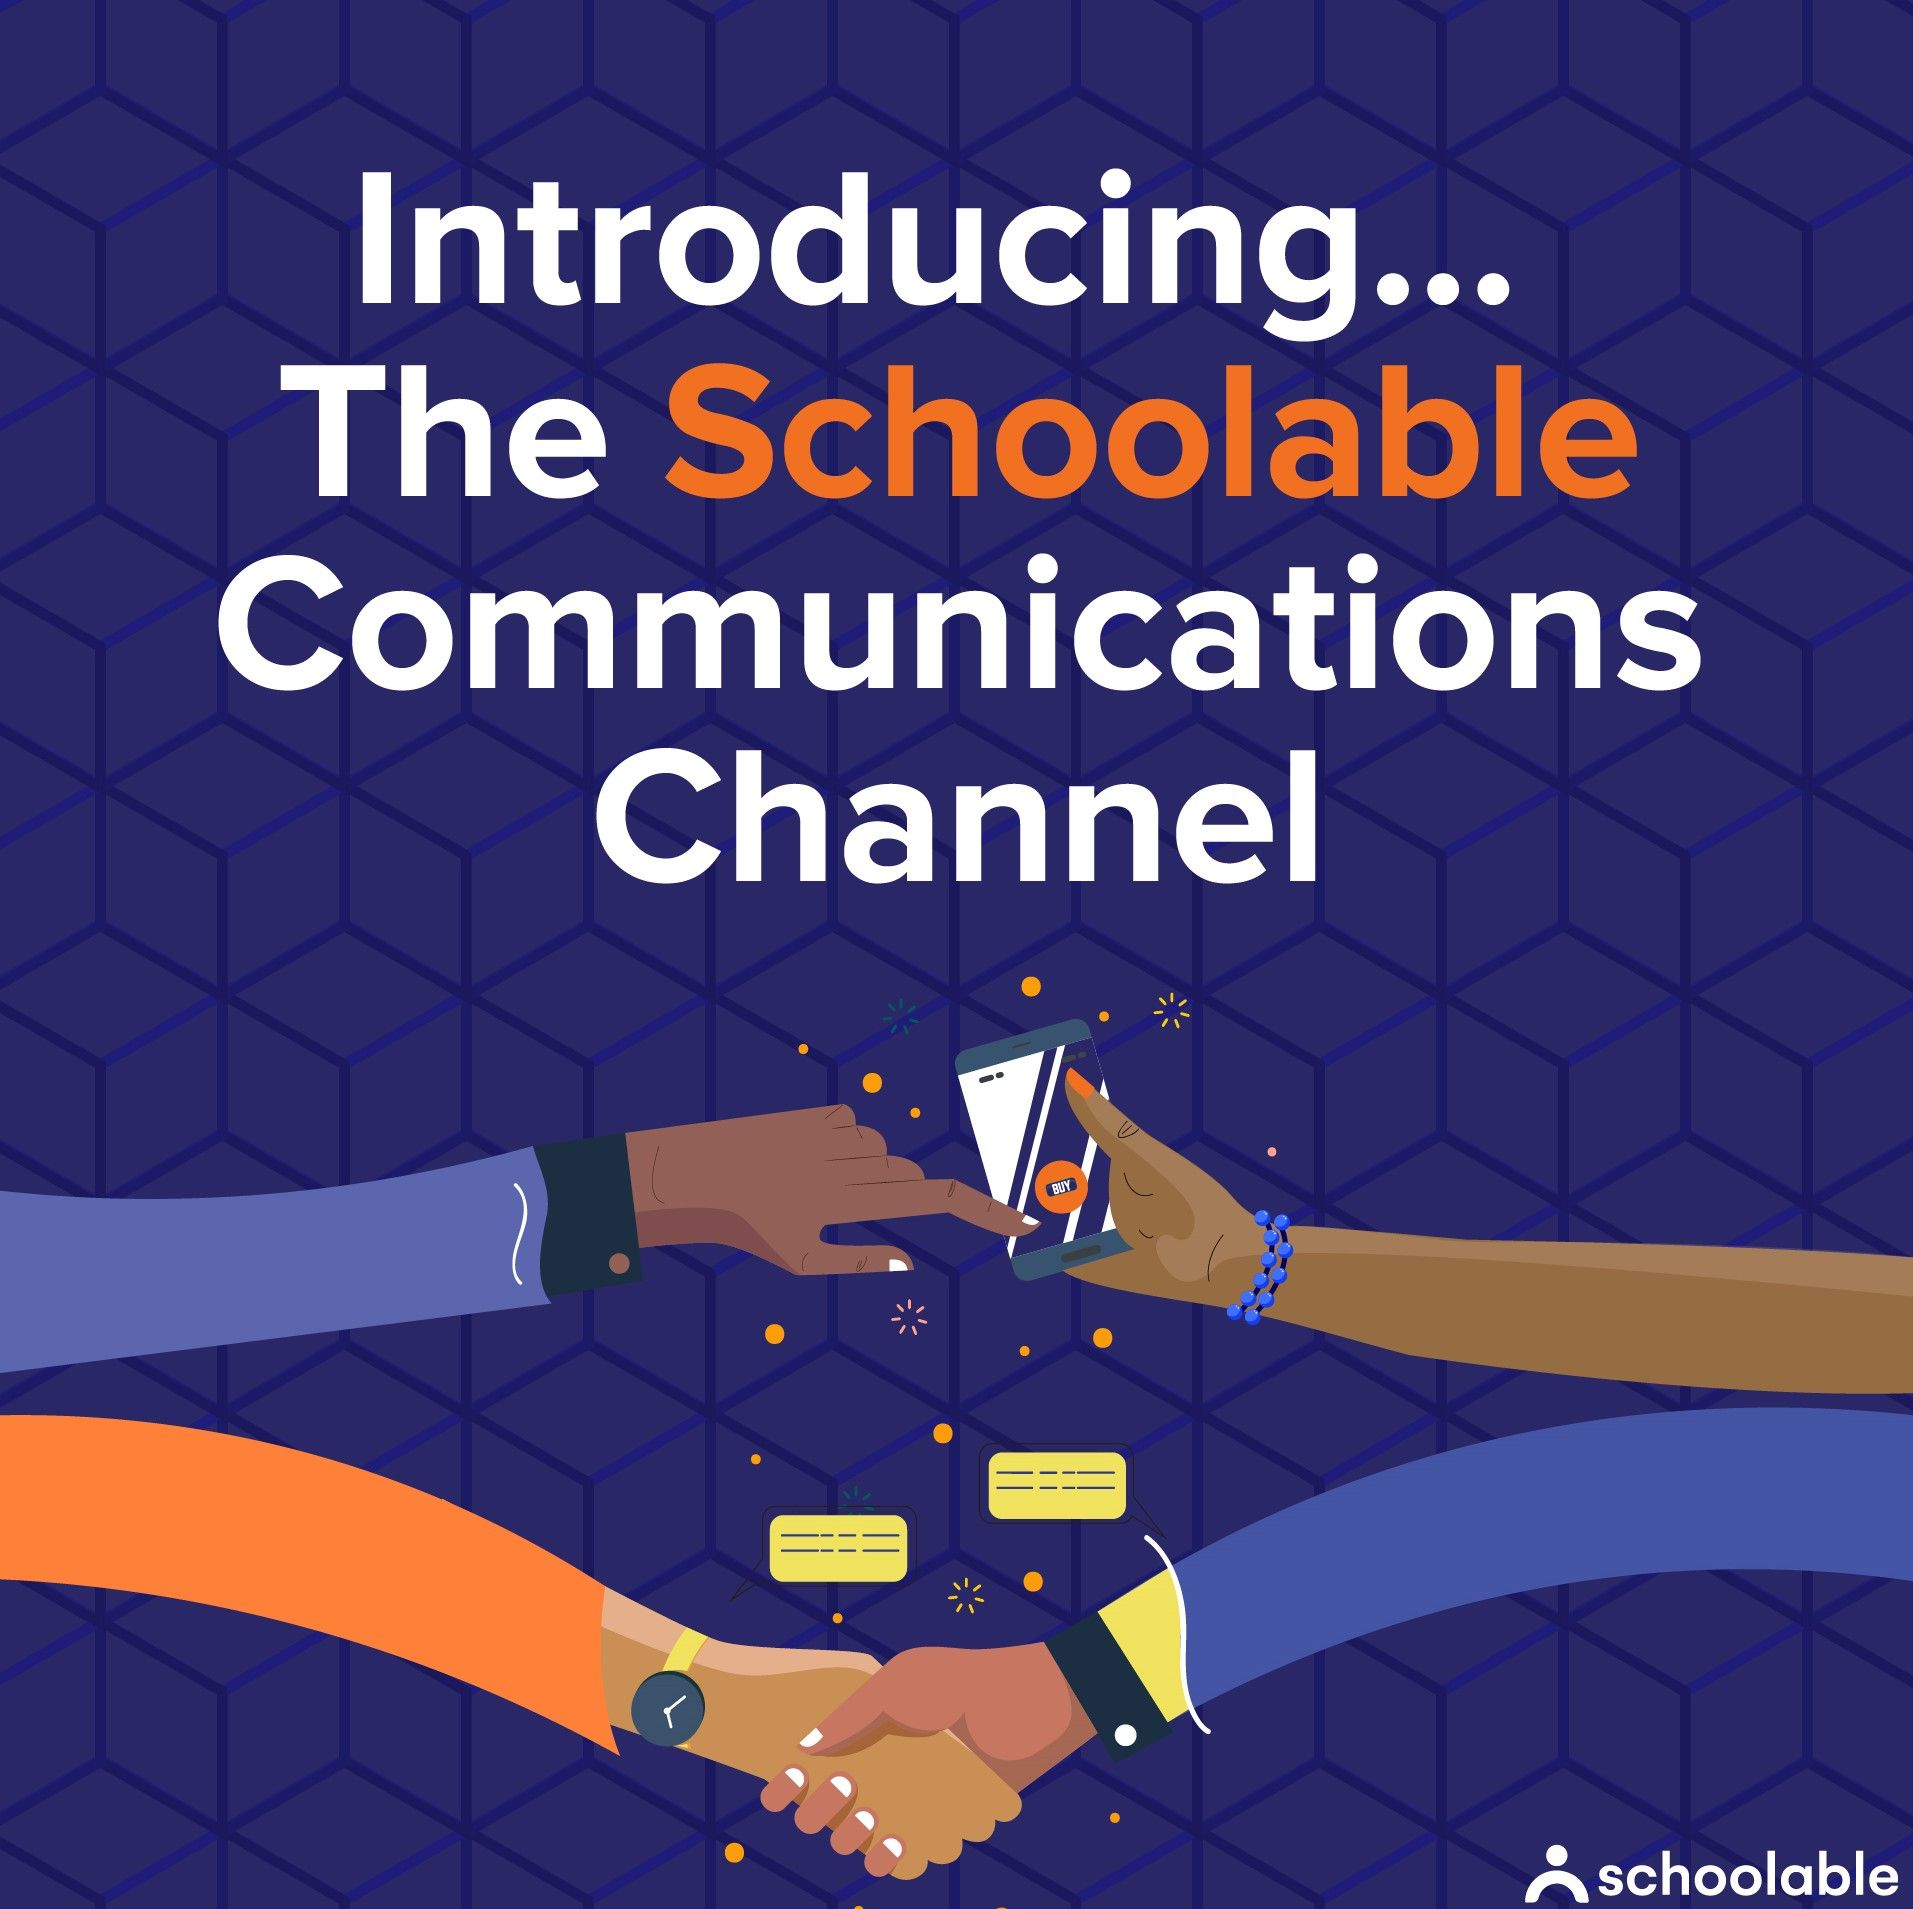 Introducing a better way for Schools to communicate with parents.